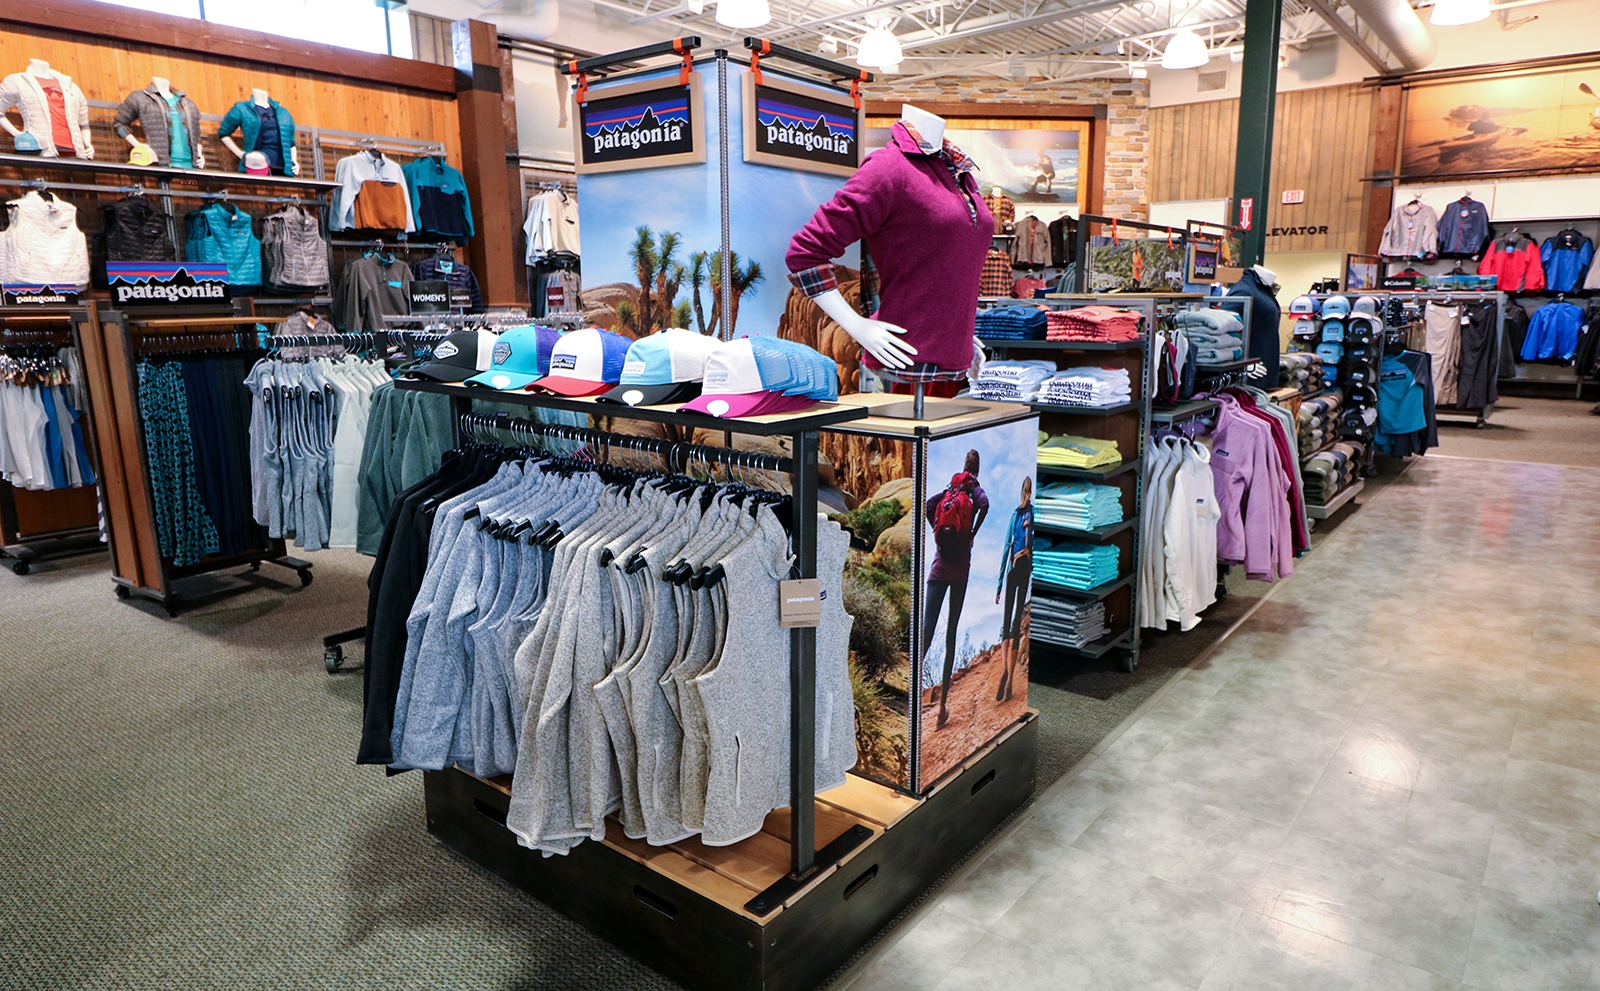 The final display designed for Patagonia by The Bernard Group, helping their products stand out in a department store environment.